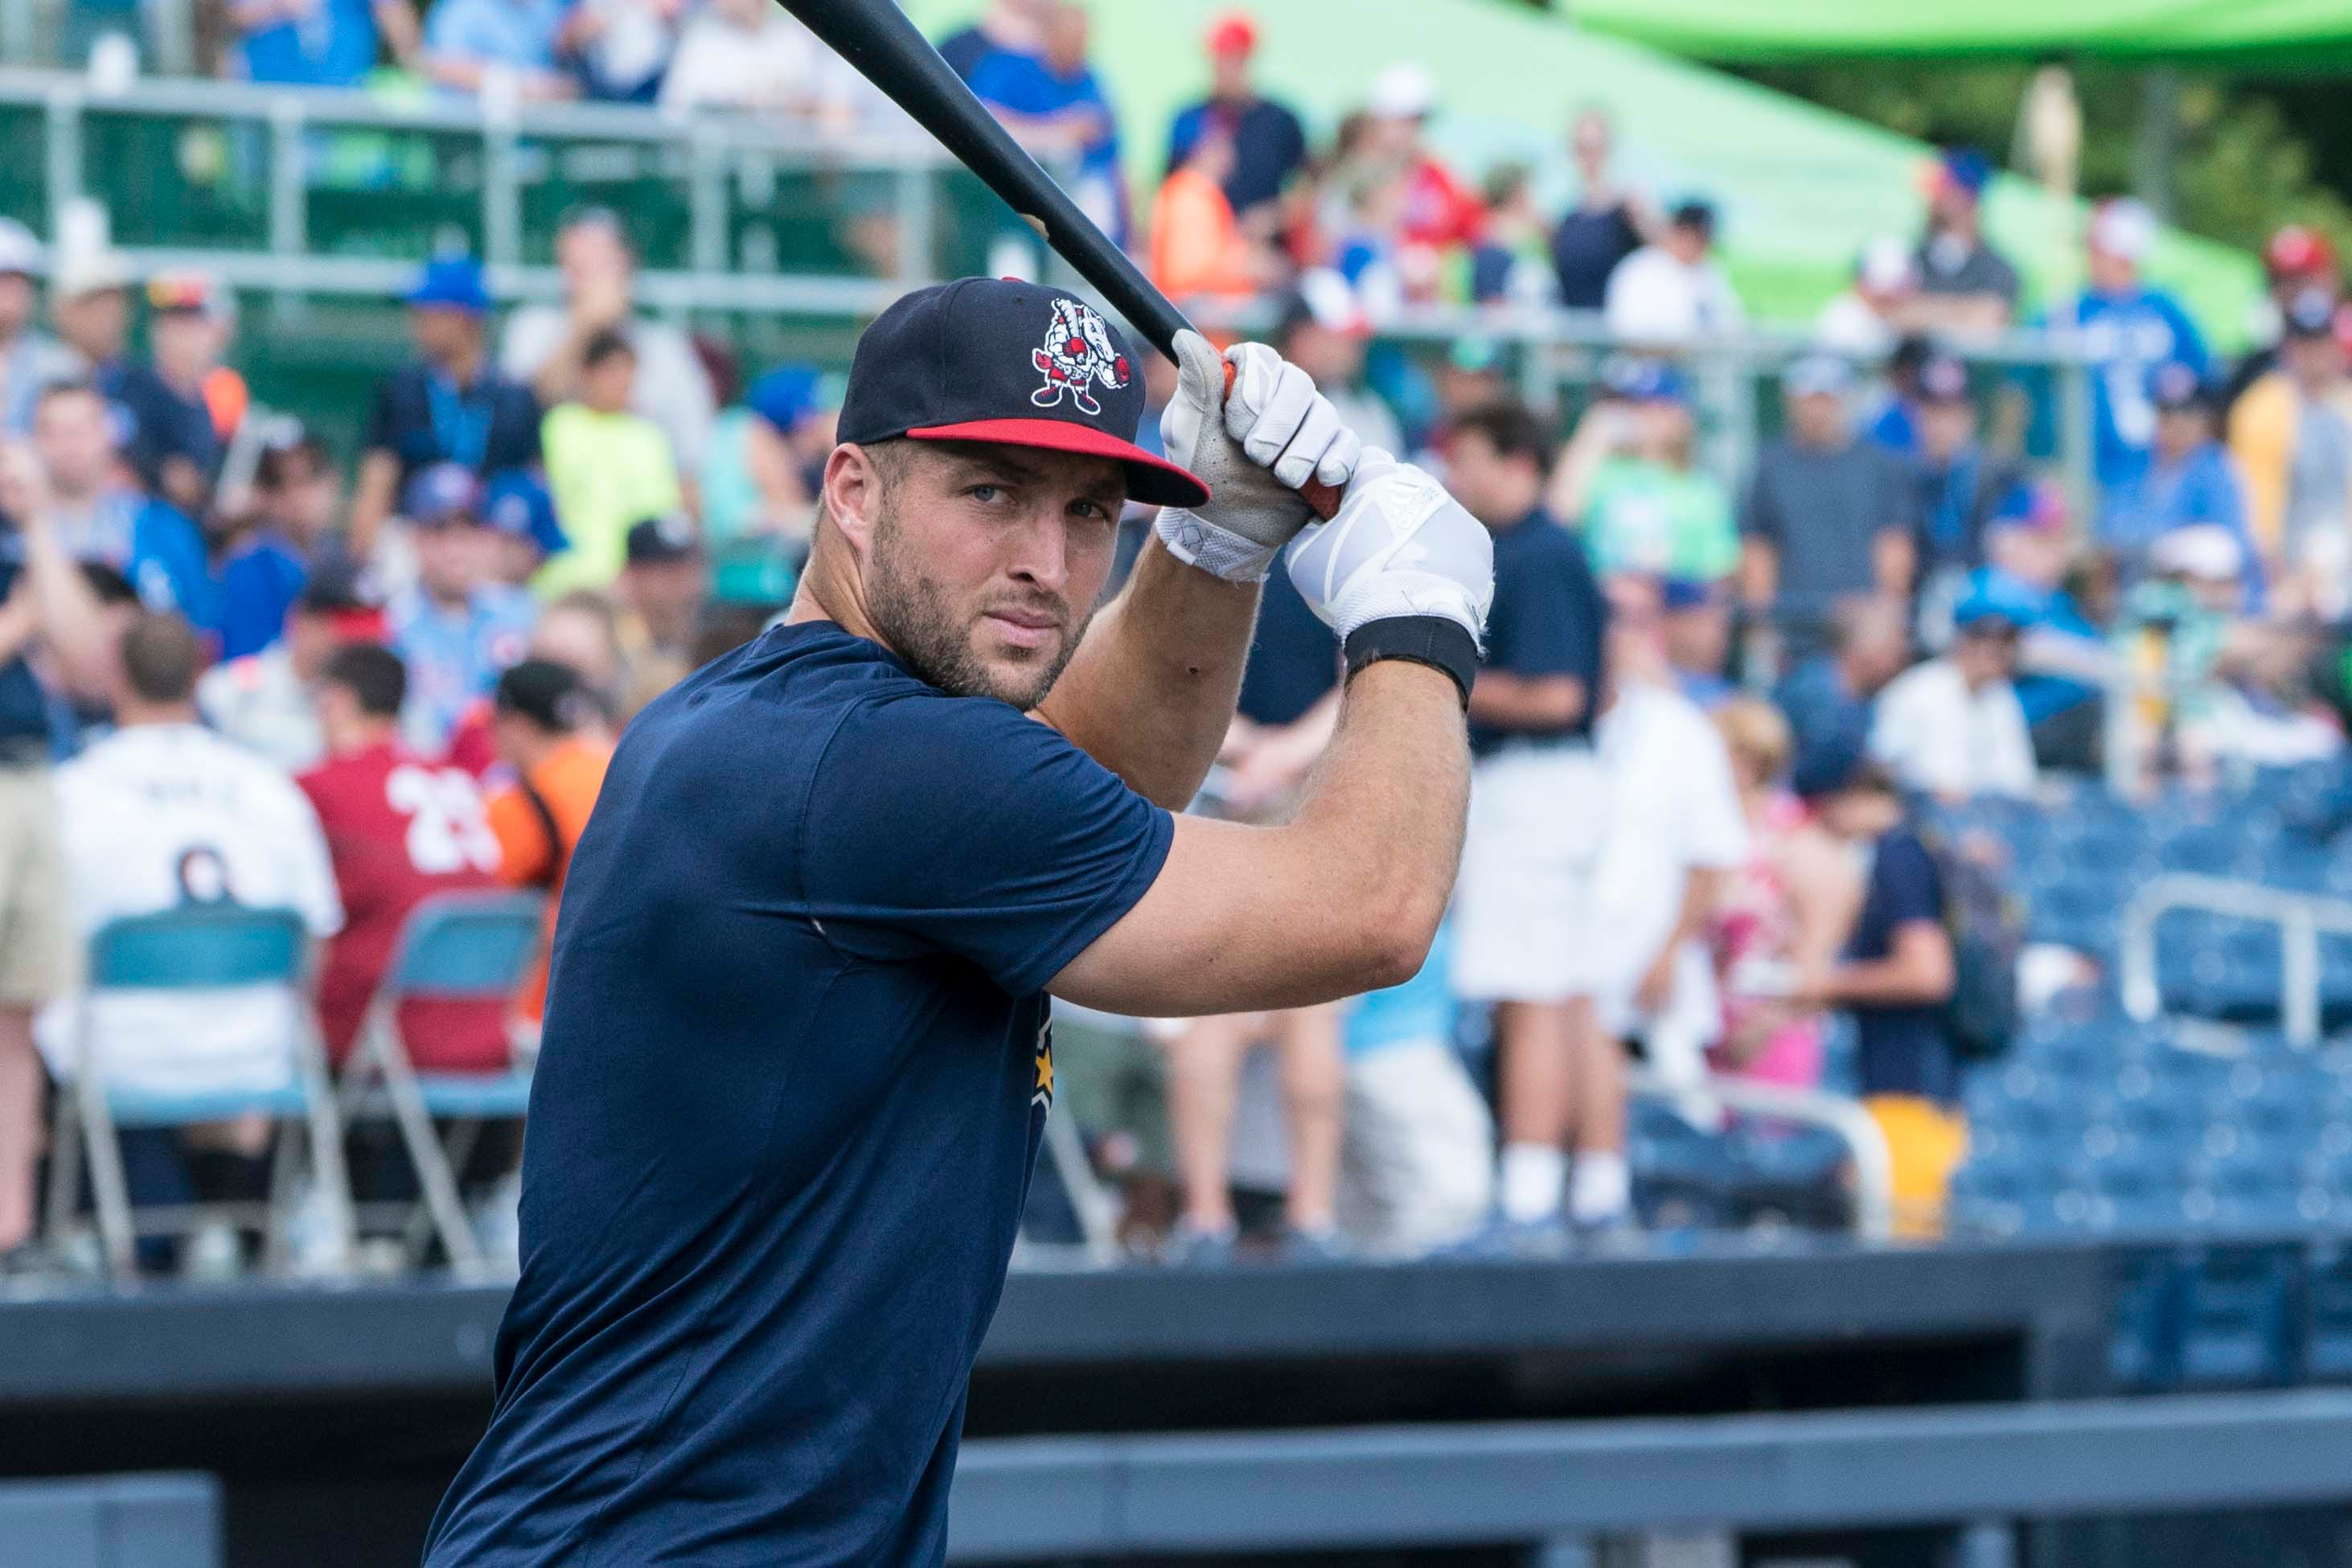 Tebow batted .273 in 84 games with Class AA Binghamton in 2018.